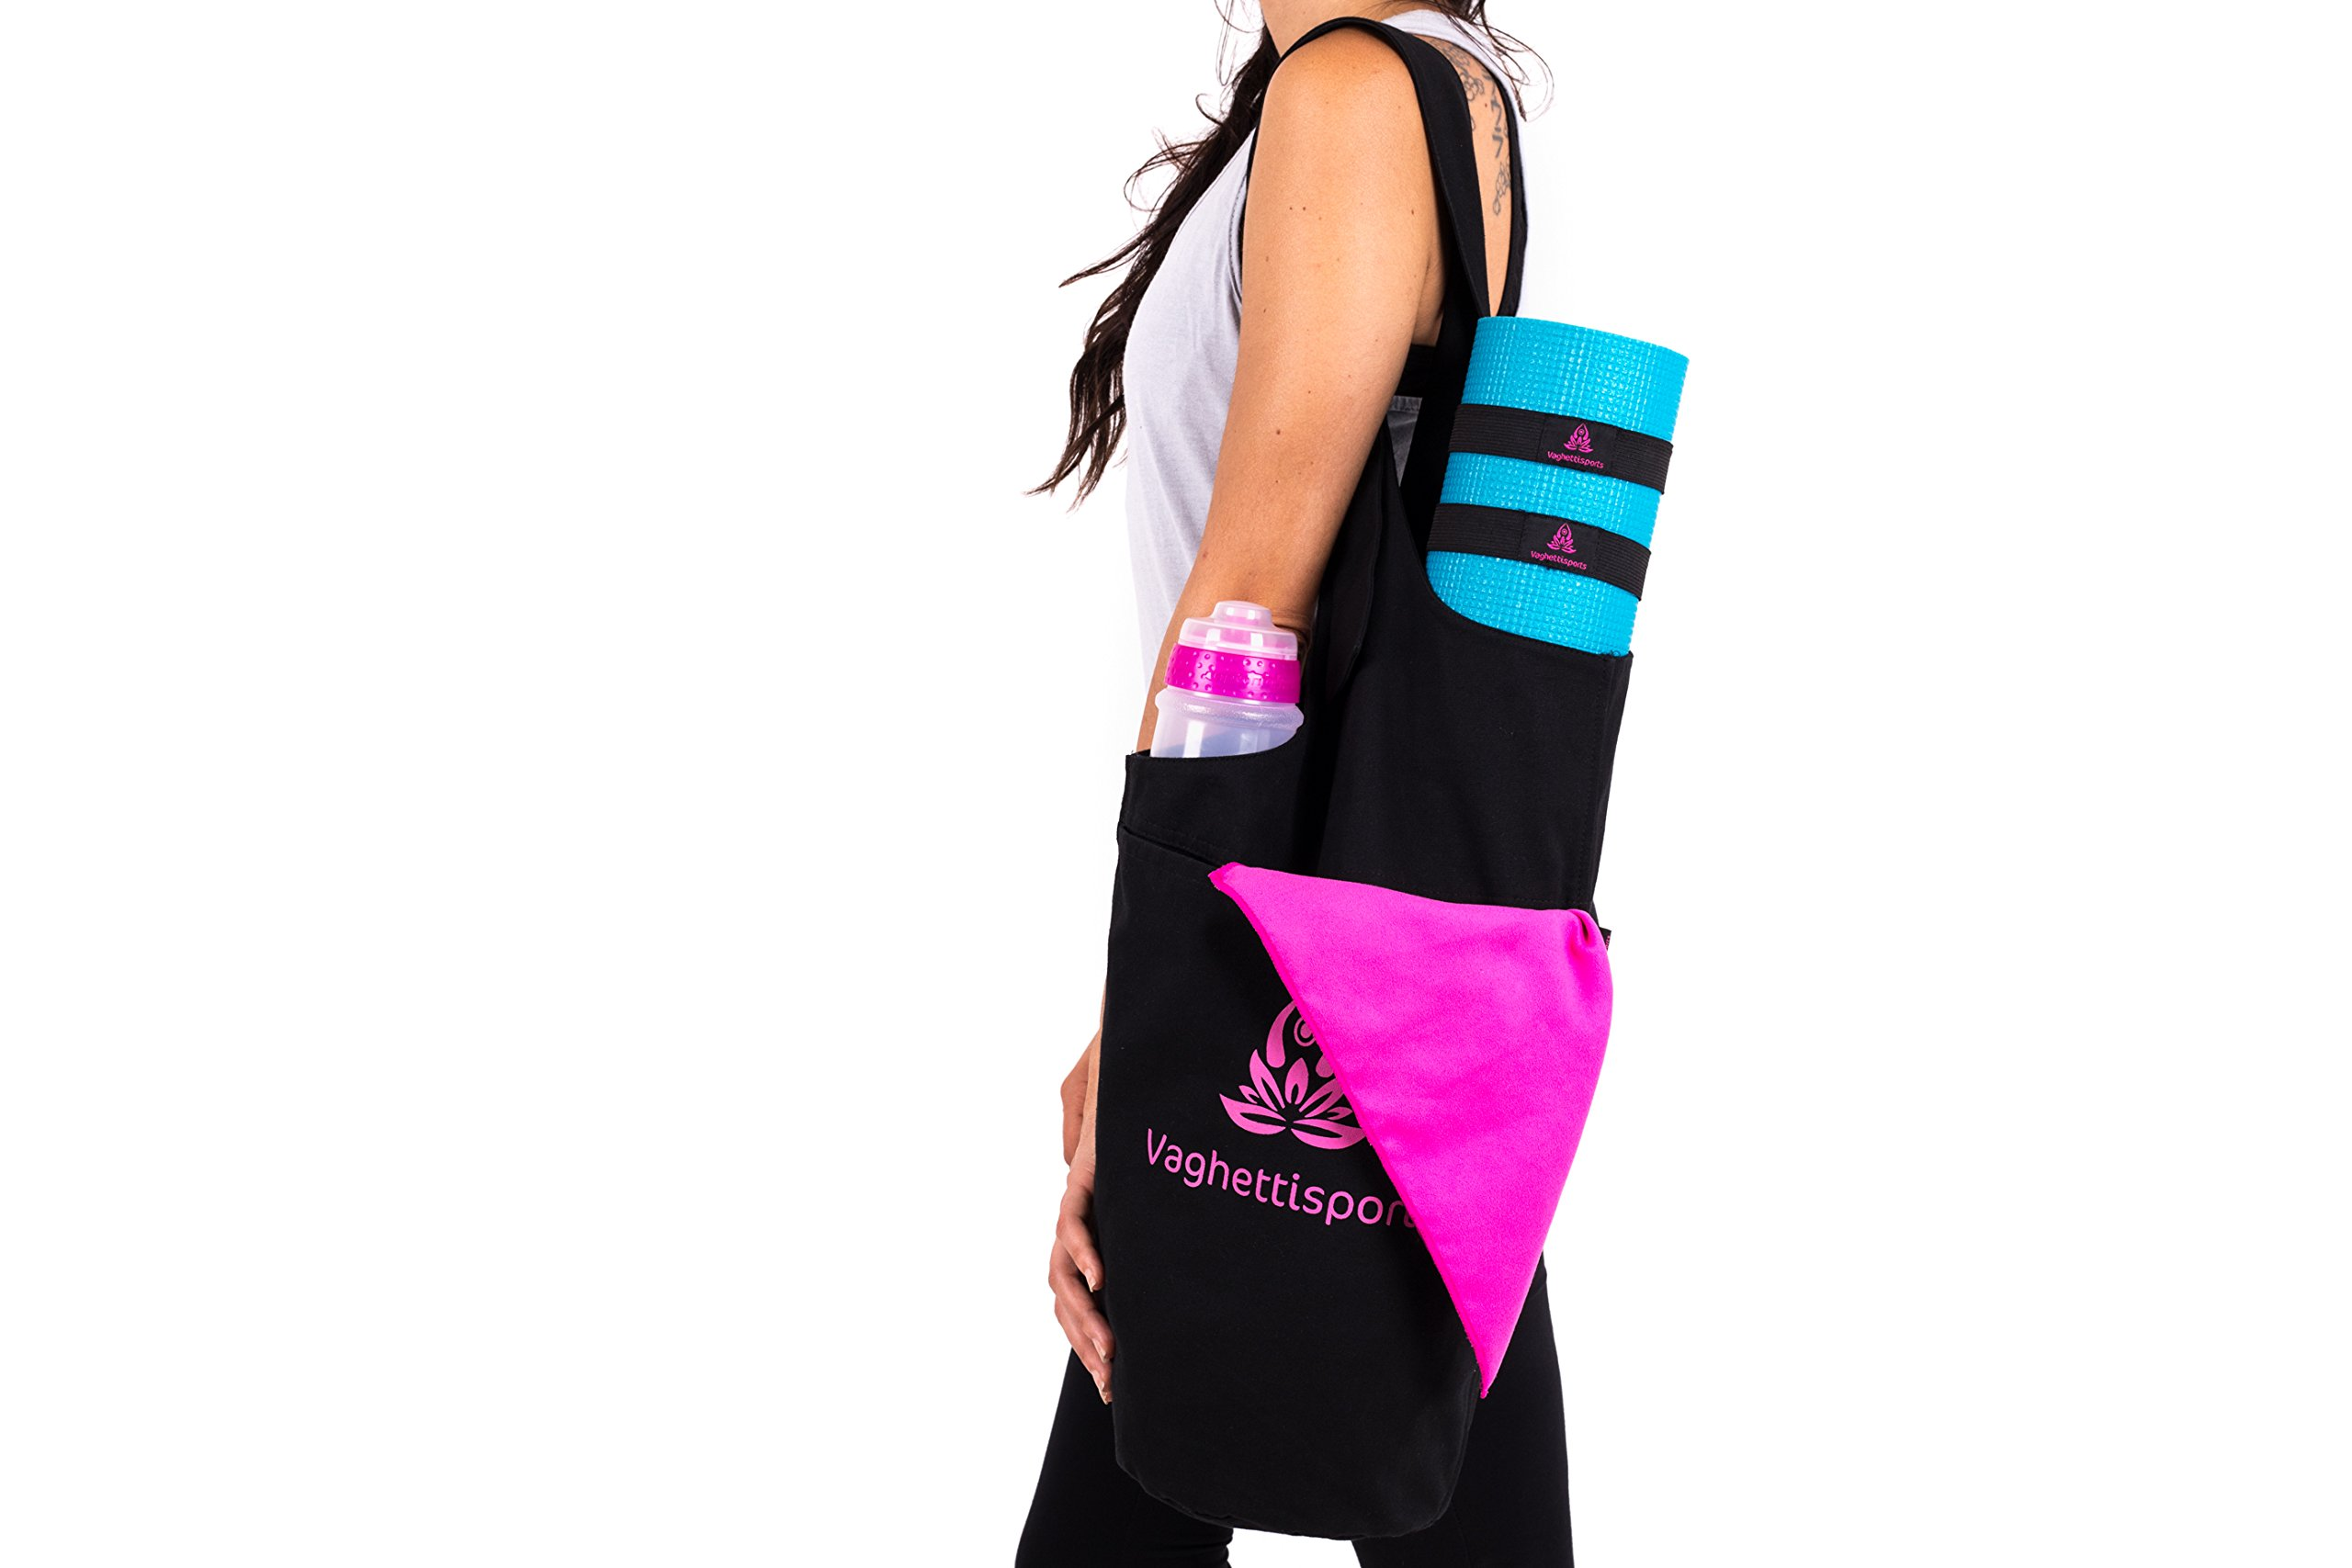 Vaghettisports Yoga Mat Bag Set with Yoga Towel & 2 Yoga Mat Straps/Premium Yoga Mat Bags with 2 Pockets and Adjustable Shoulder Strap/Cotton Yoga Mat Tote Sling Carrier-Fits Almost Yoga Mats Size